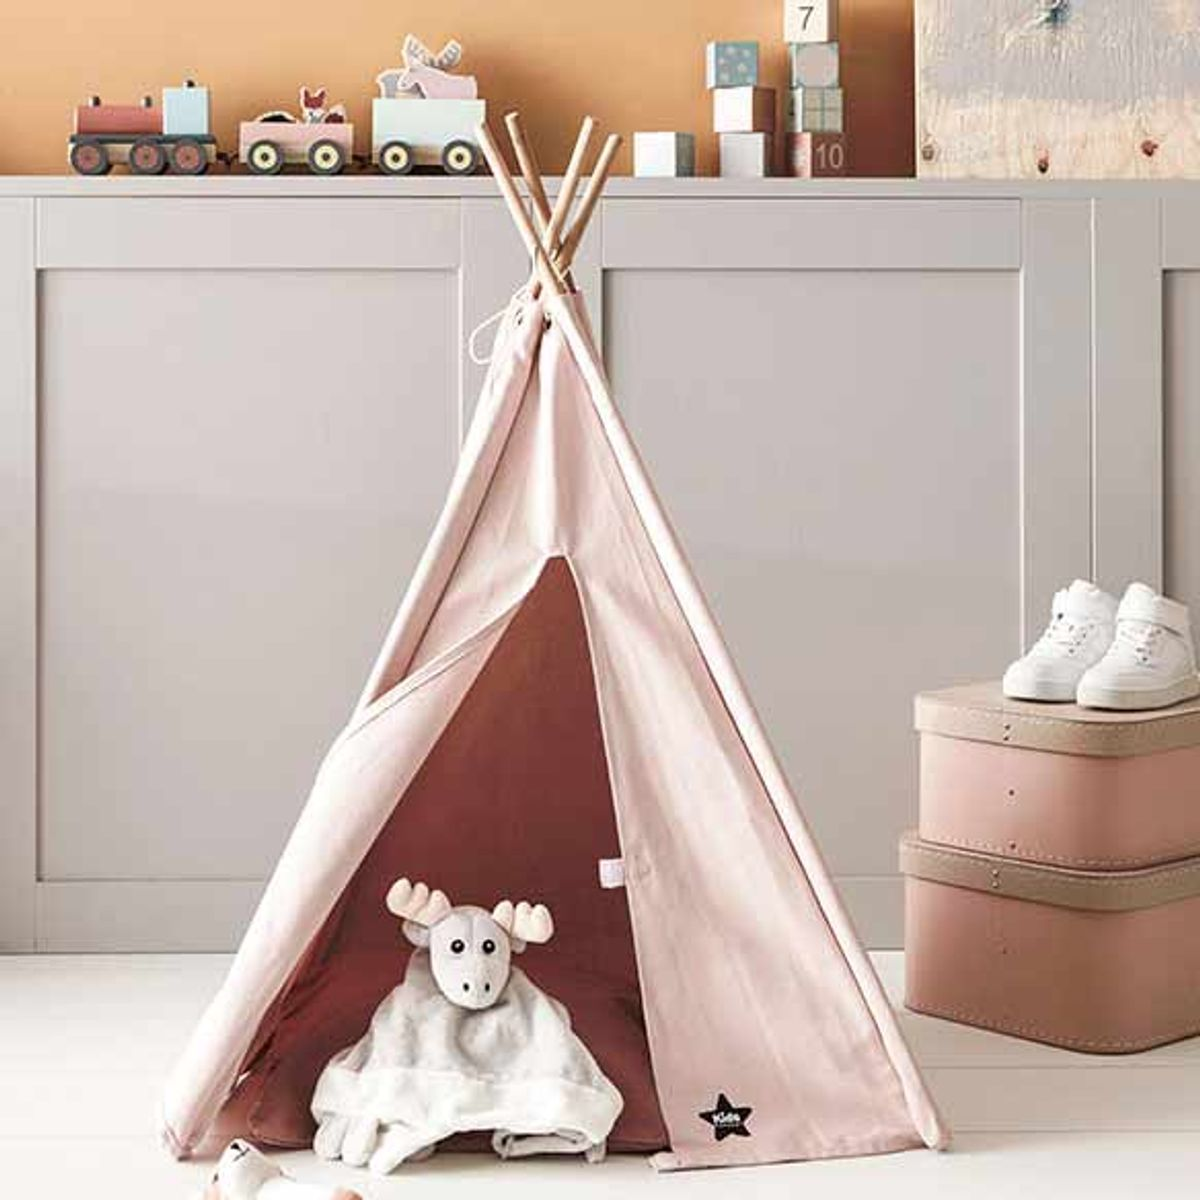 mini tipi en tissu rose et bois naturel kid s concept. Black Bedroom Furniture Sets. Home Design Ideas